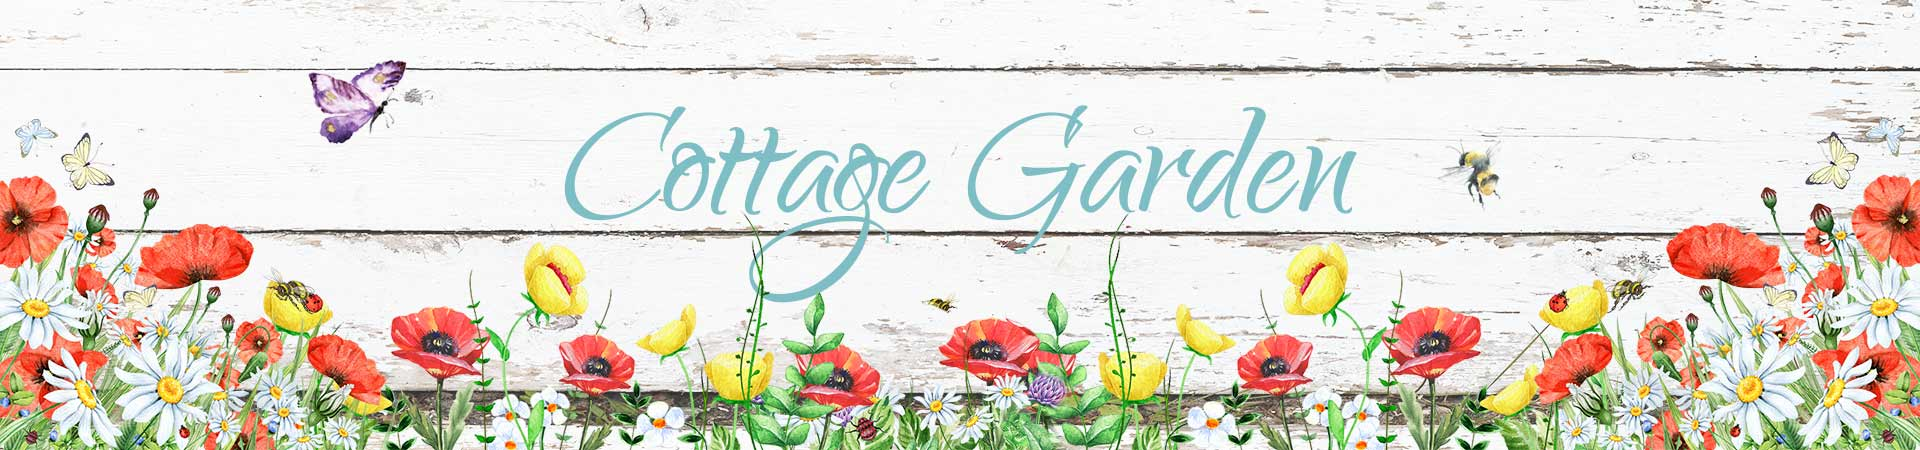 Cottage garden header